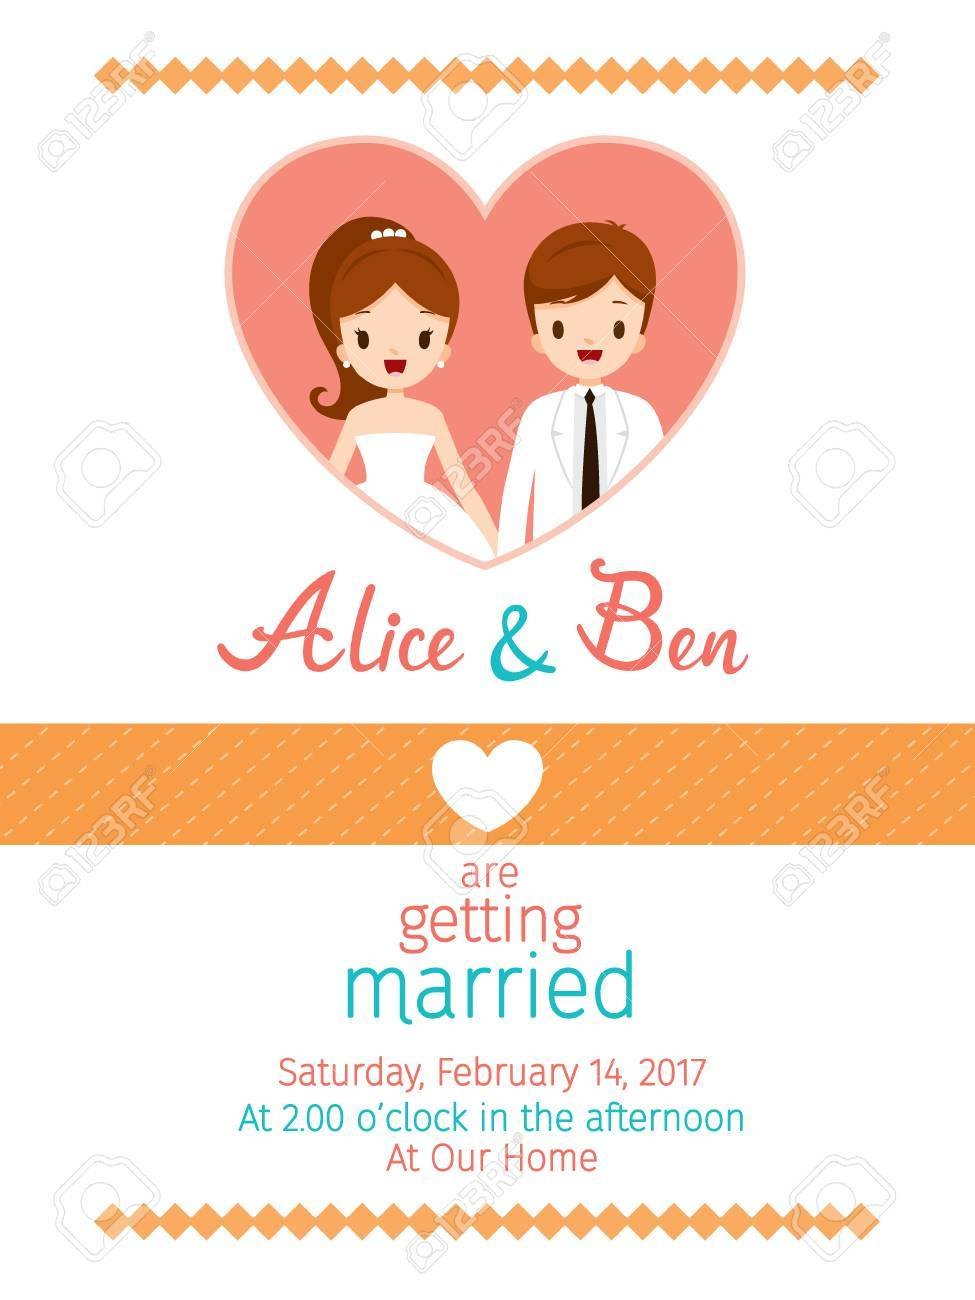 Wedding Invitation Card Template Bride And Groom Love Relationship Sweetheart Engagement Valentine S Day